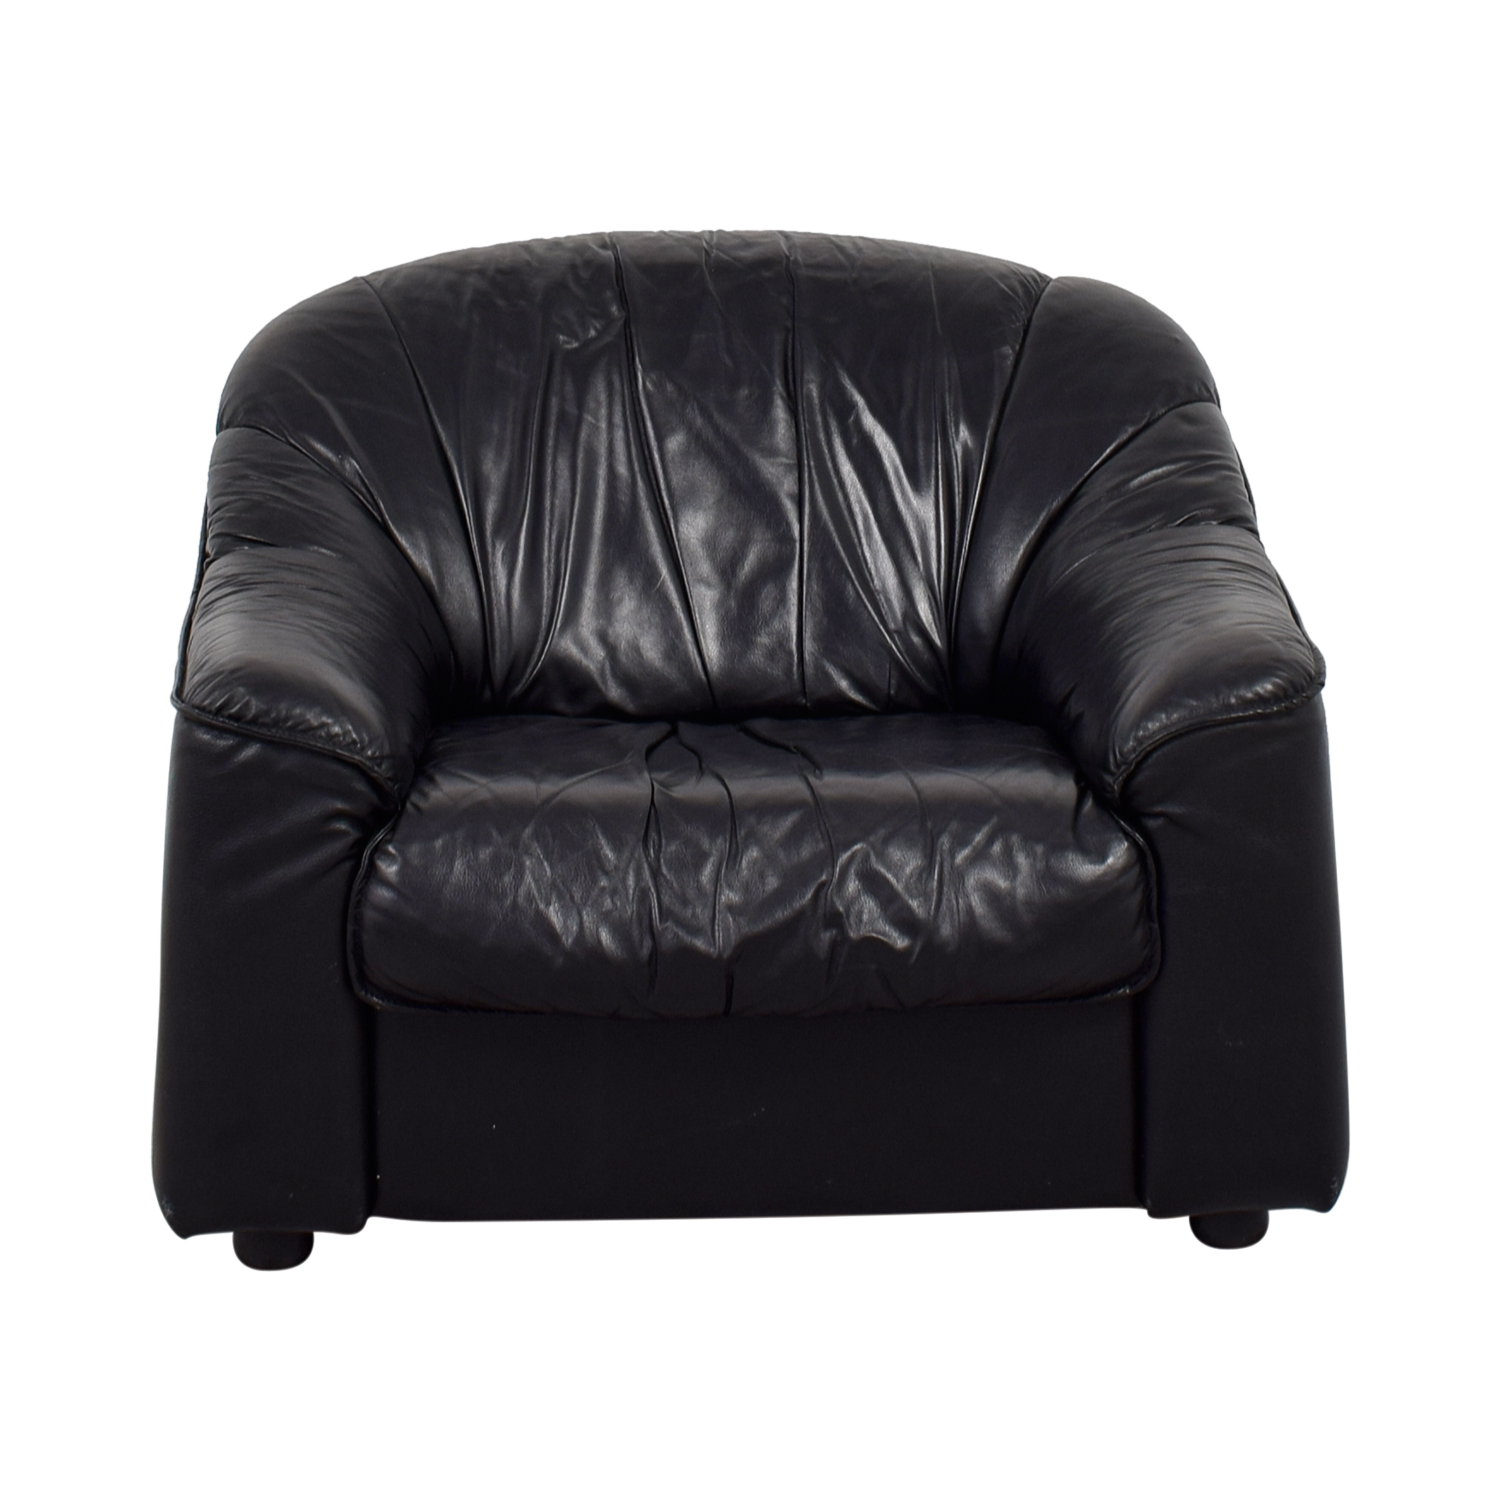 Natuzzi Natuzzi Black Leather Accent Chair Sofas